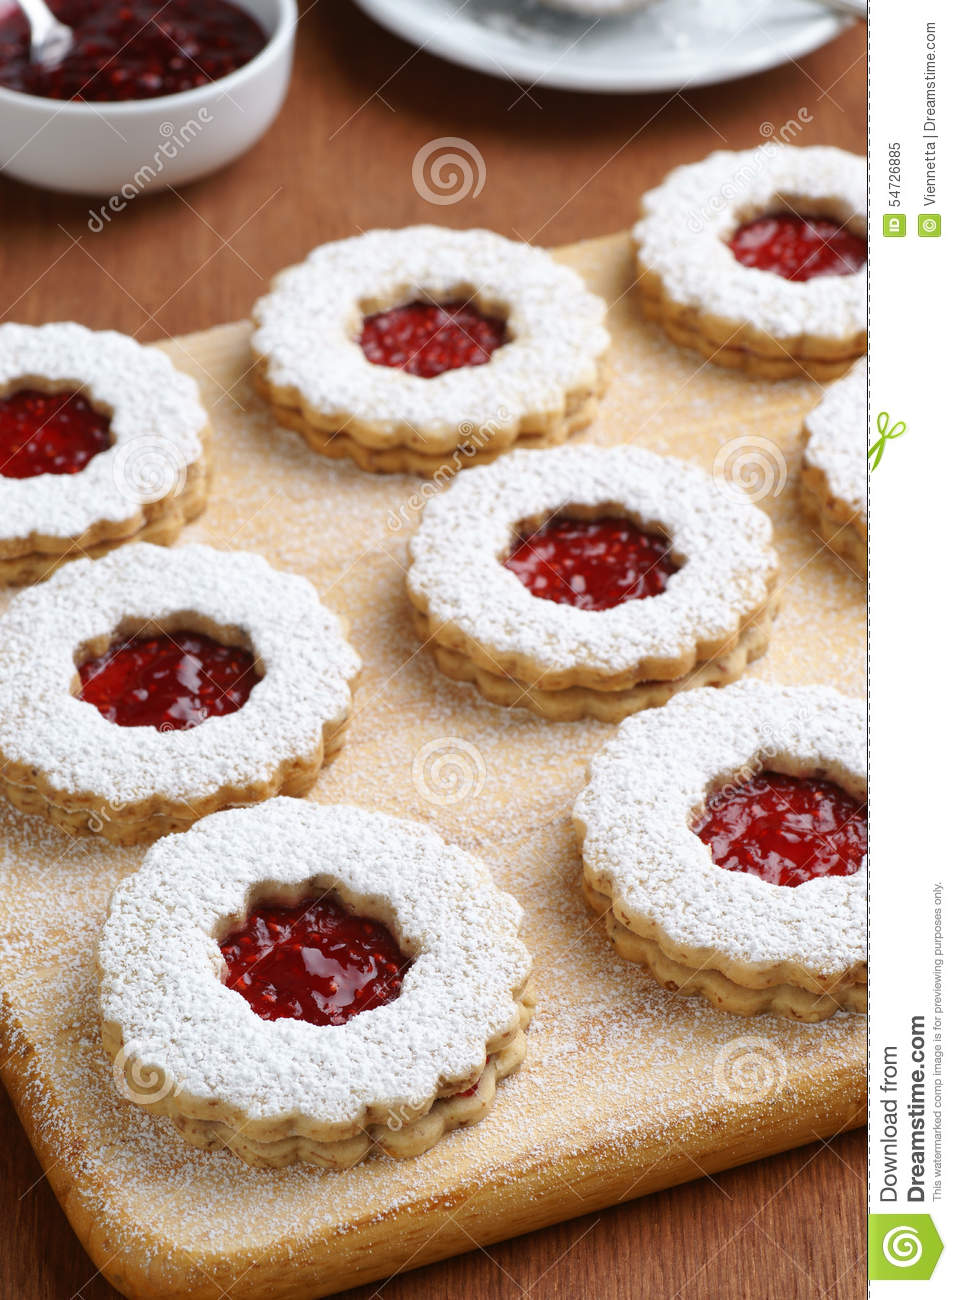 Raspberry Linzer Torte Cookies On Cutting Board Stock Photo.